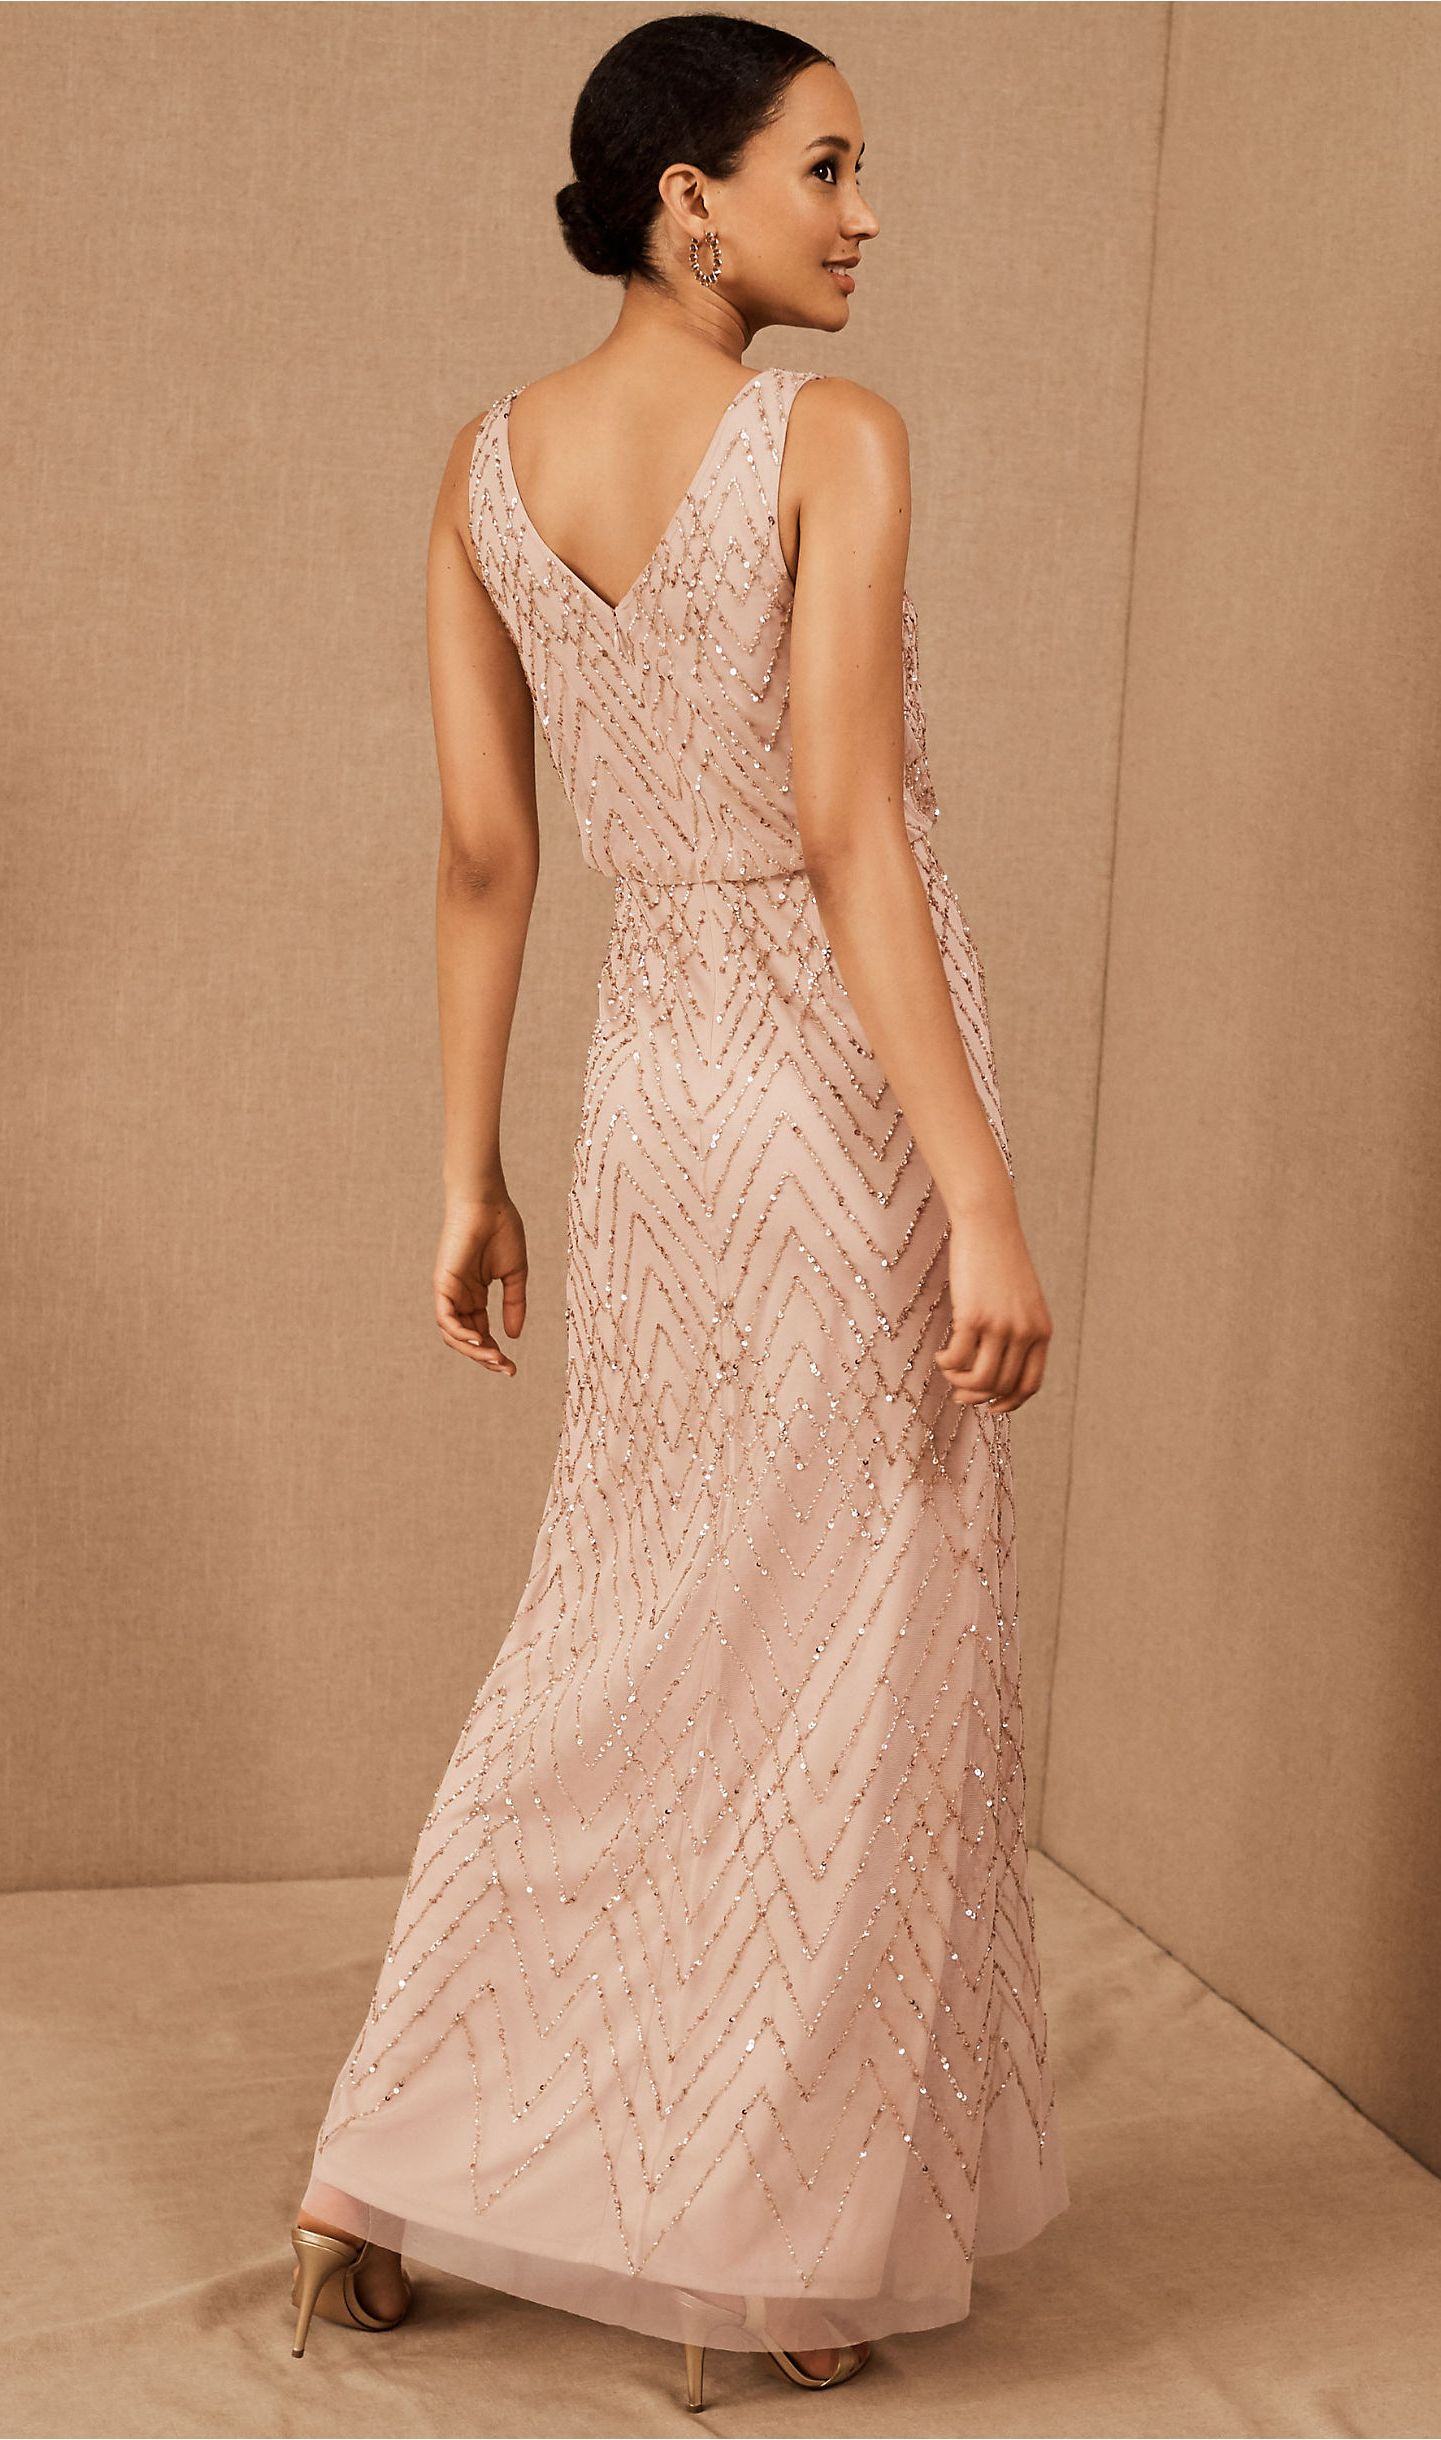 Pink Mother Of The Bride Dresses Dress For The Wedding Dresses Mother Of The Bride Dresses Bride Dress [ 2440 x 1441 Pixel ]